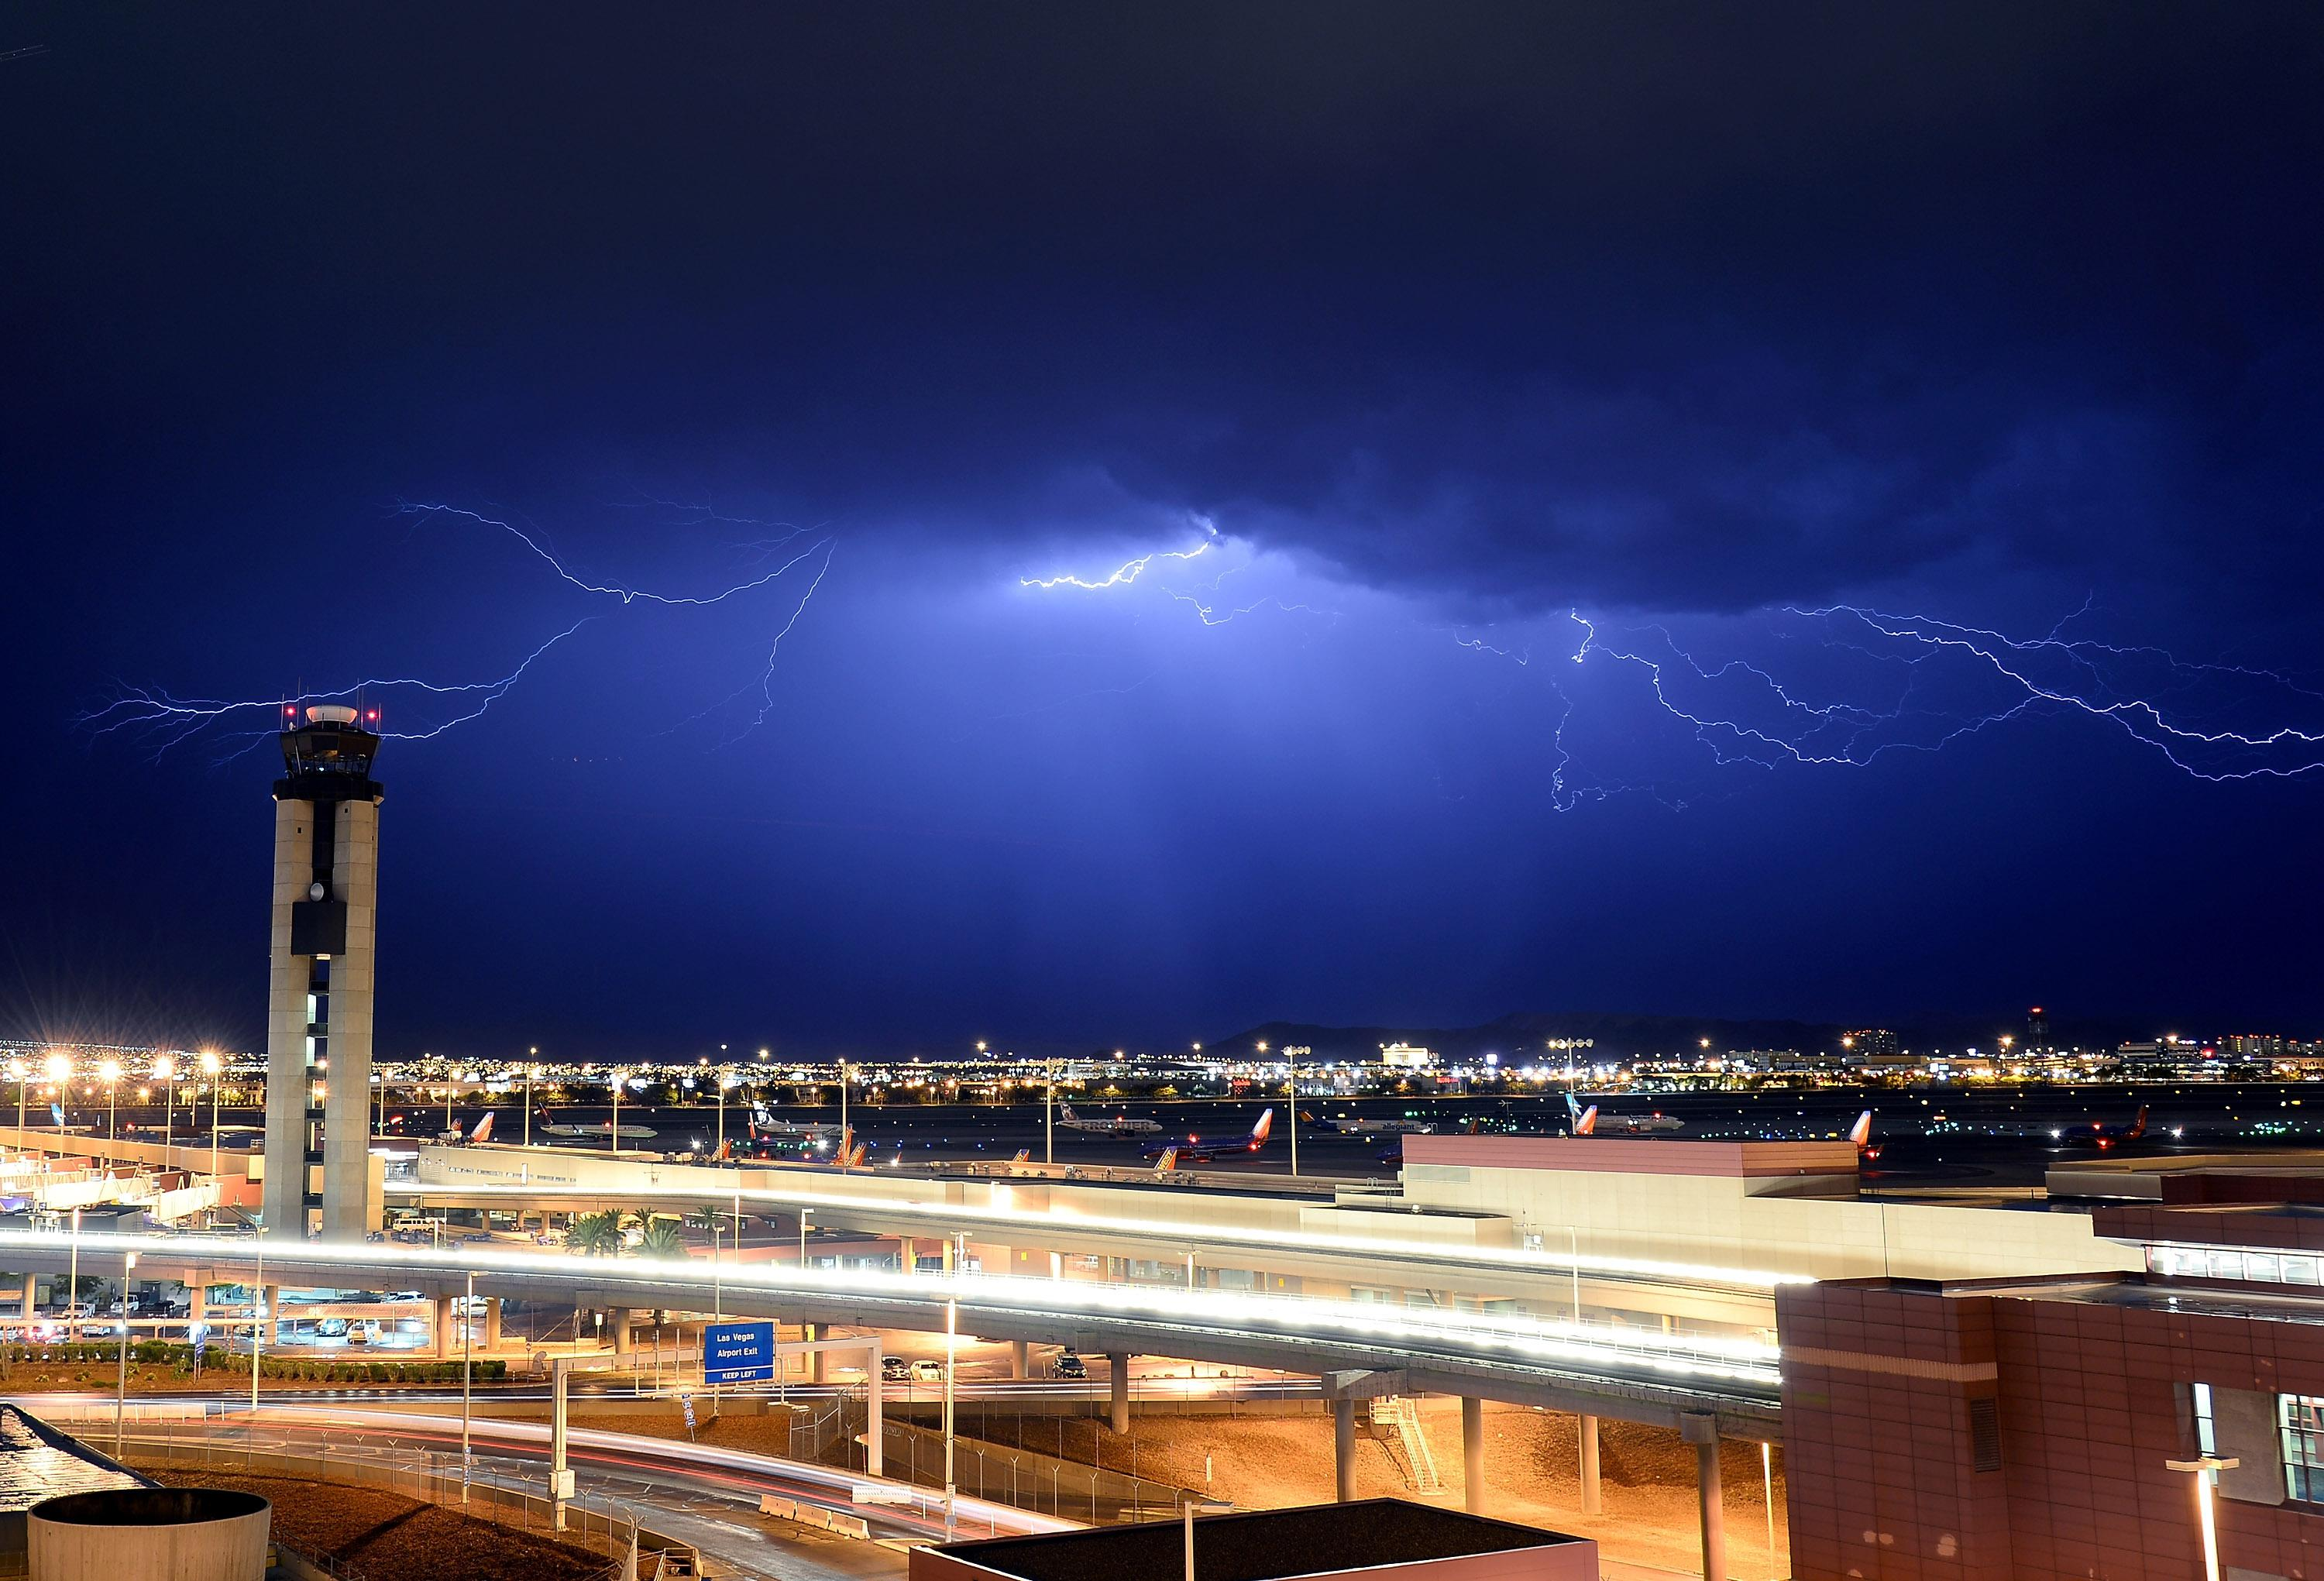 Lightning flashes behind an air traffic control tower at McCarran International Airport on August 18, 2013 in Las Vegas, Nevada (AFP Photo/Ethan Miller)